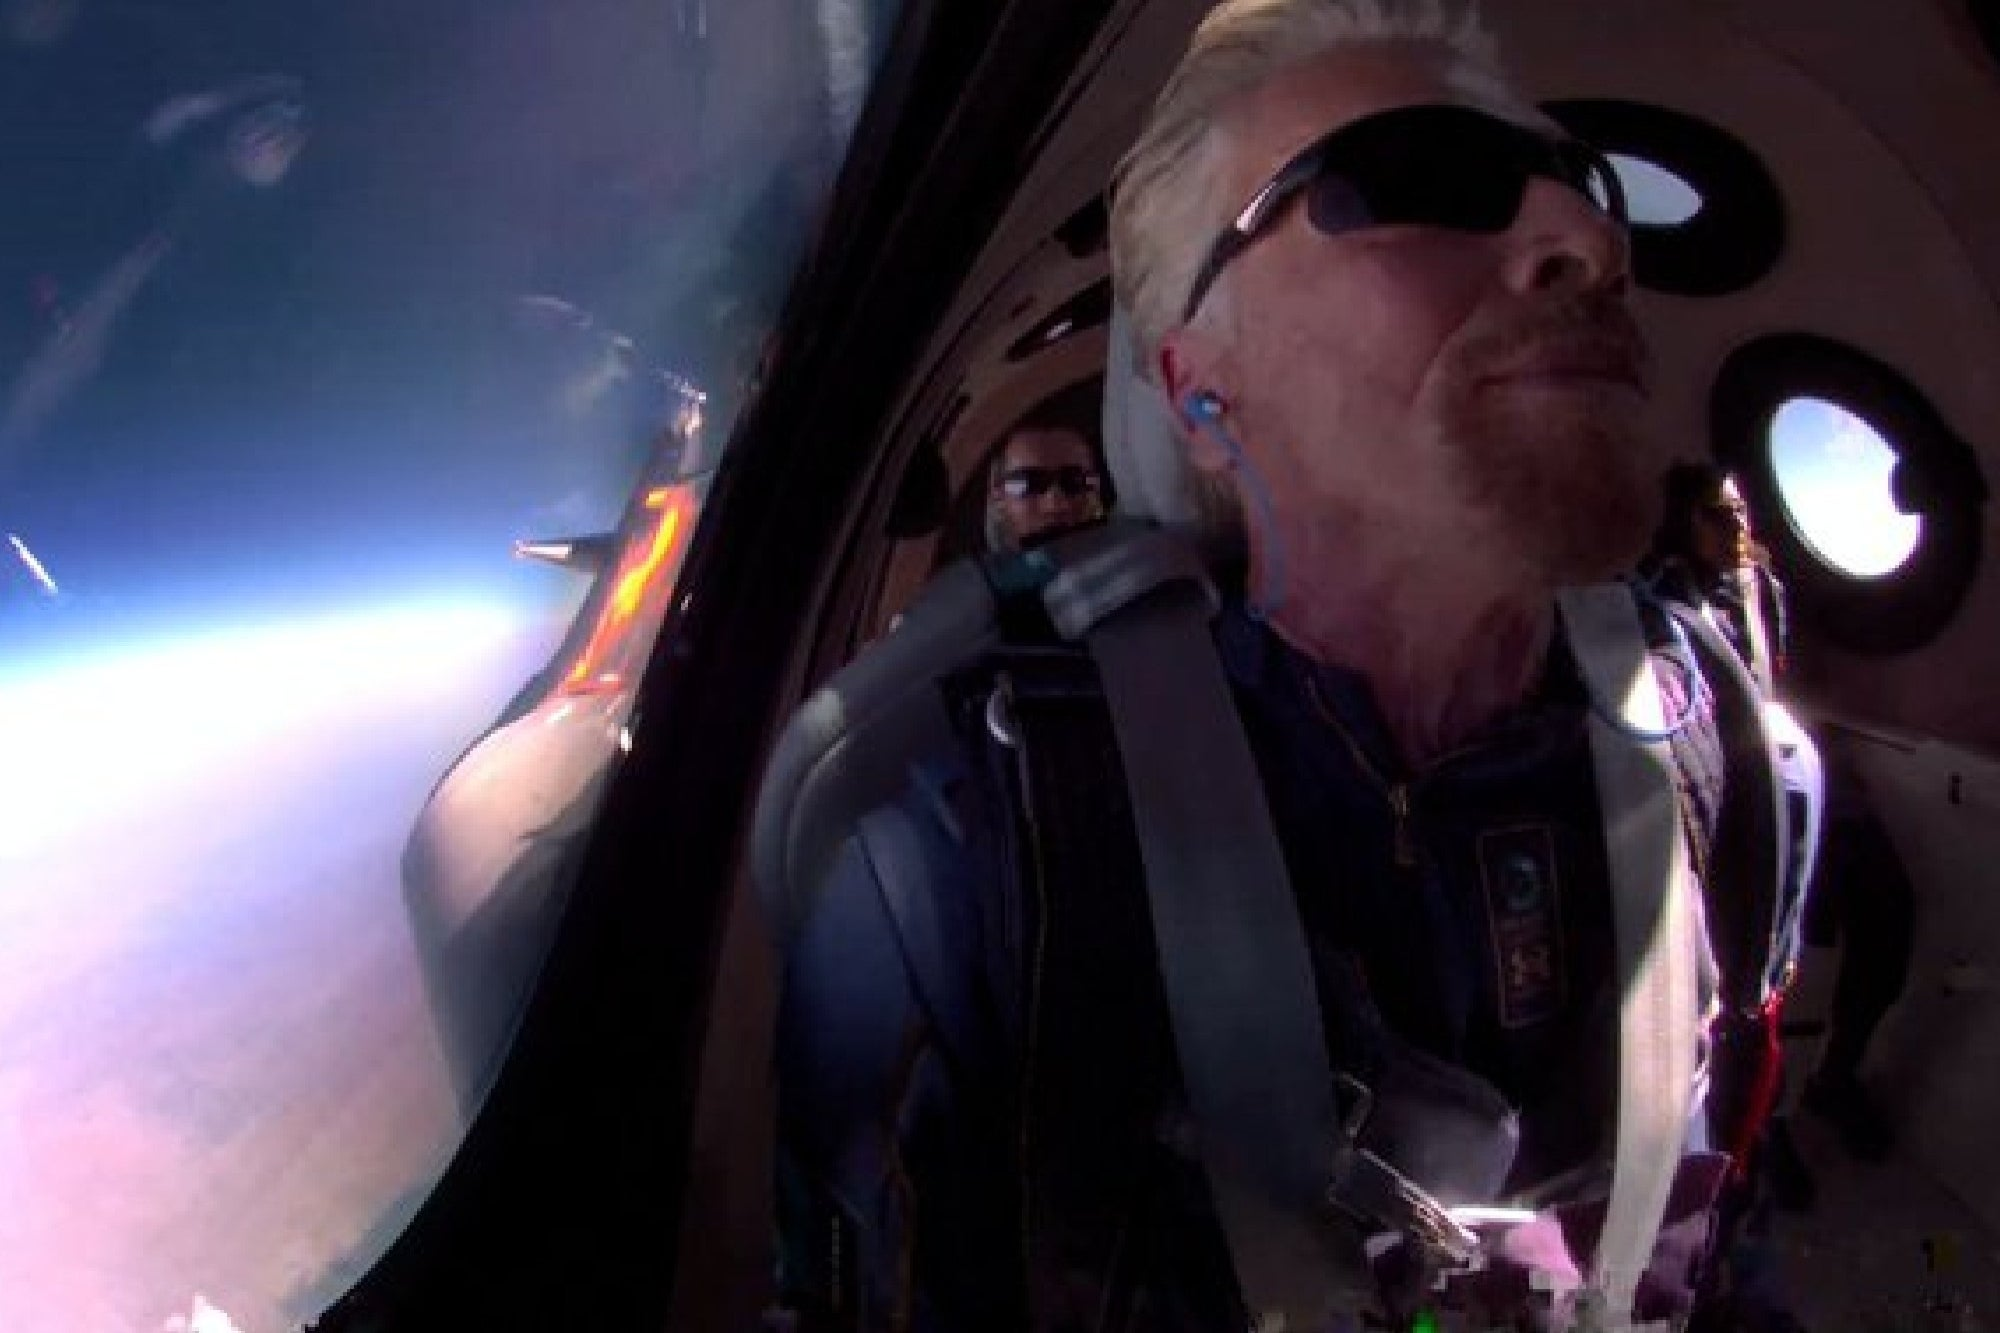 Did Richard Branson really go into space? Astrophysicist Neil deGrasse Tyson Says No